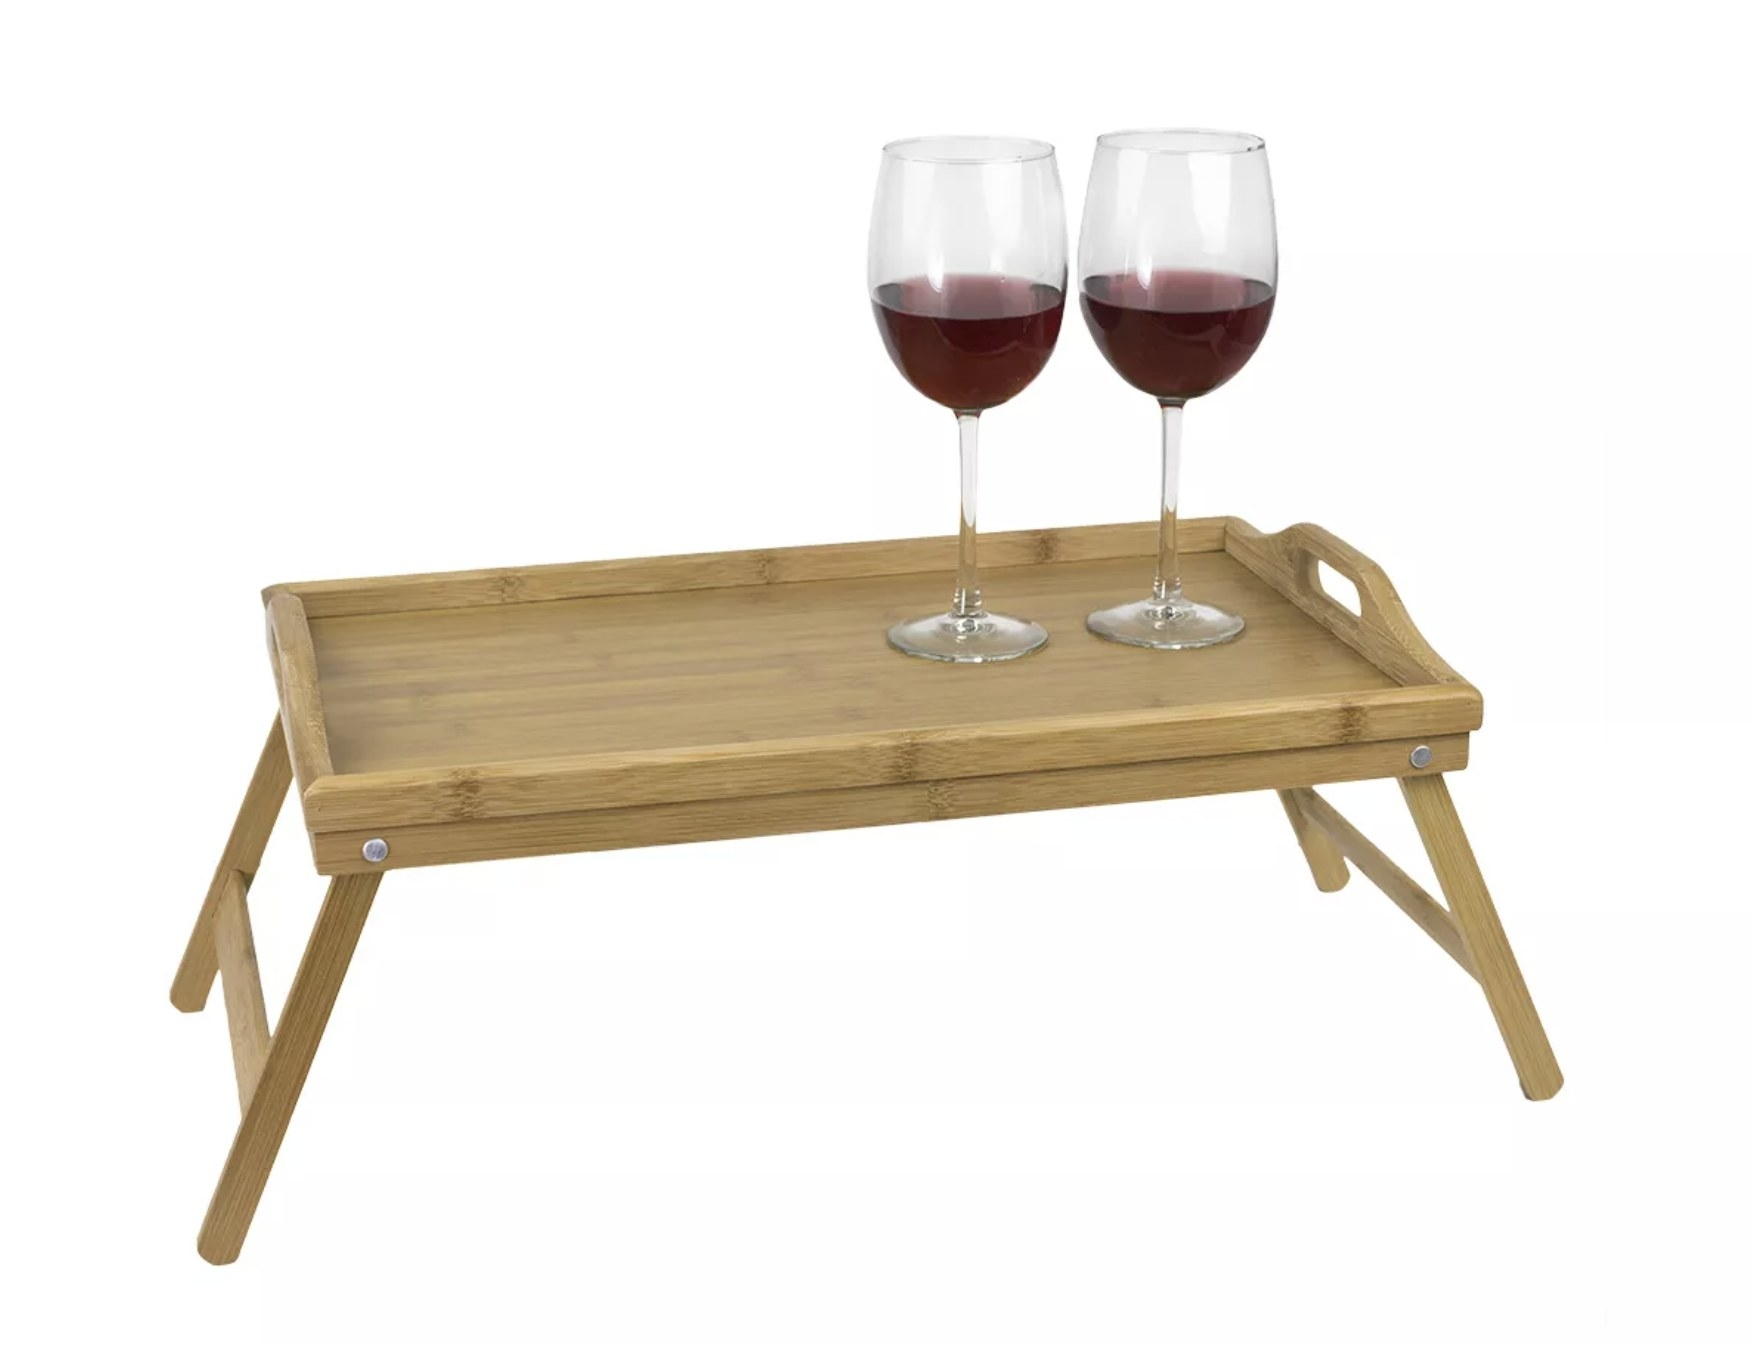 A light pine wood folding bed tray with handles and two wine glasses on top